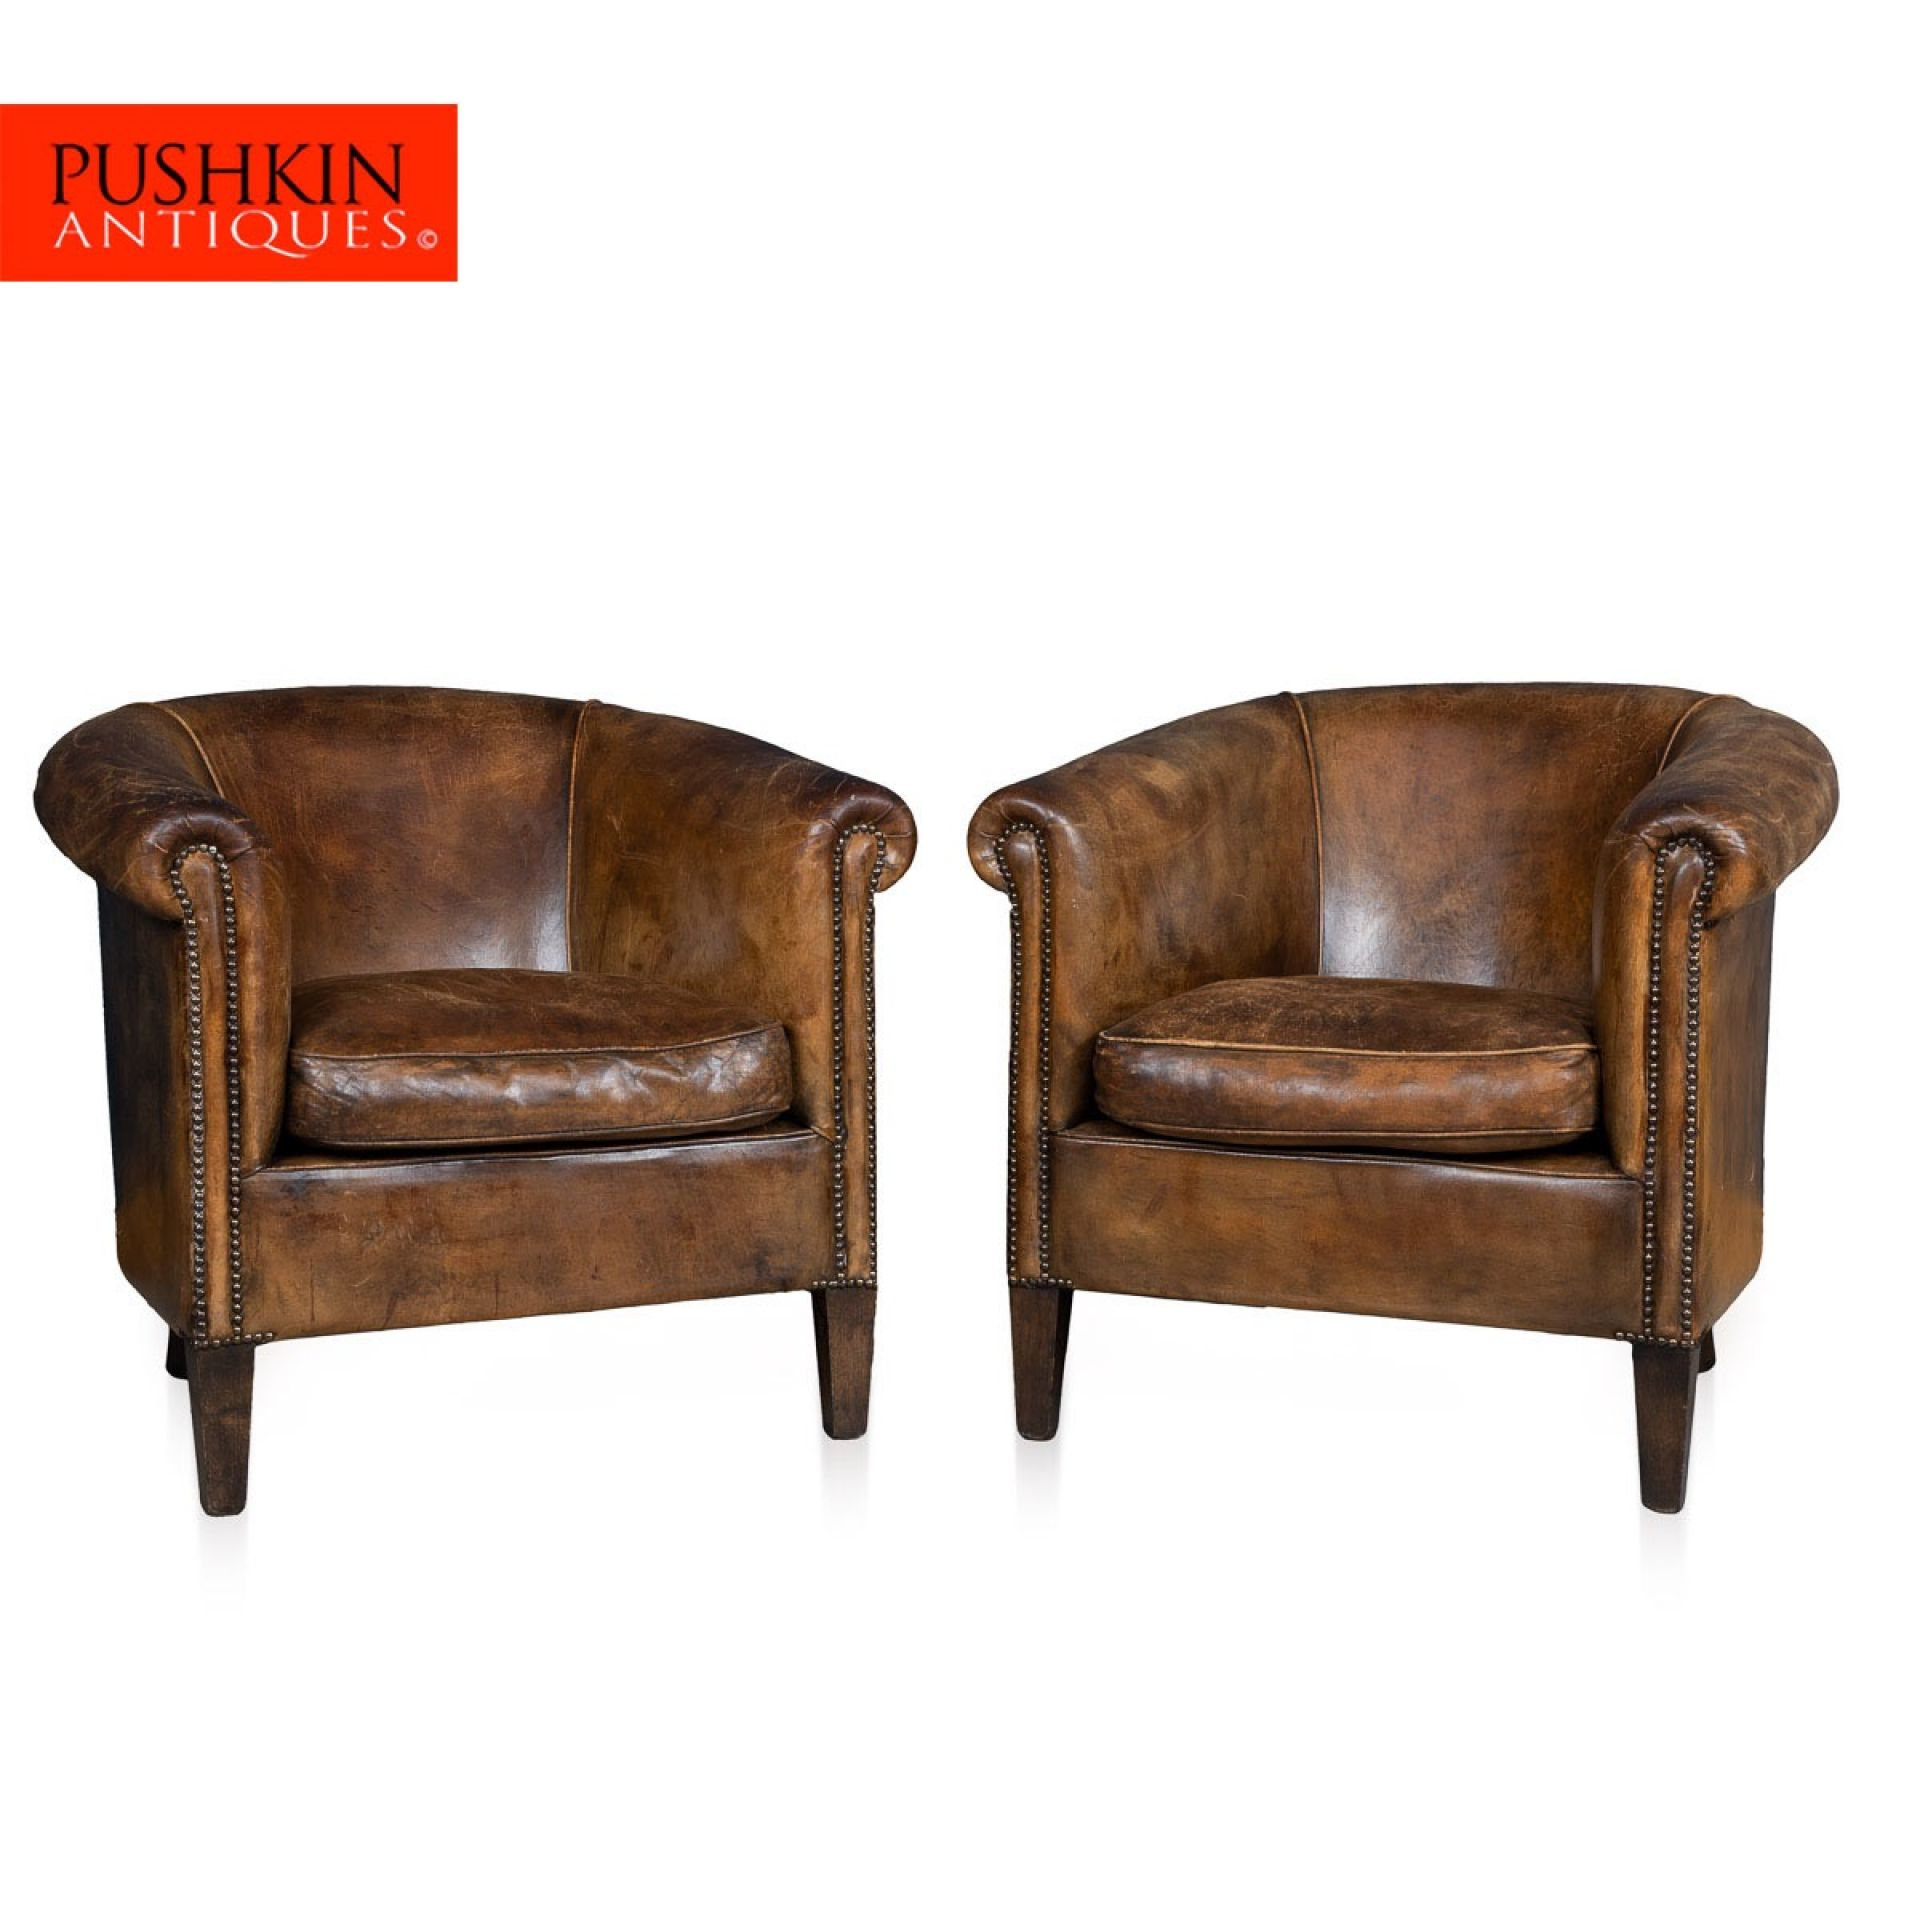 STUNNING 20thC PAIR OF DUTCH SHEEPSKIN BROWN LEATHER TUB ARMCHAIRS